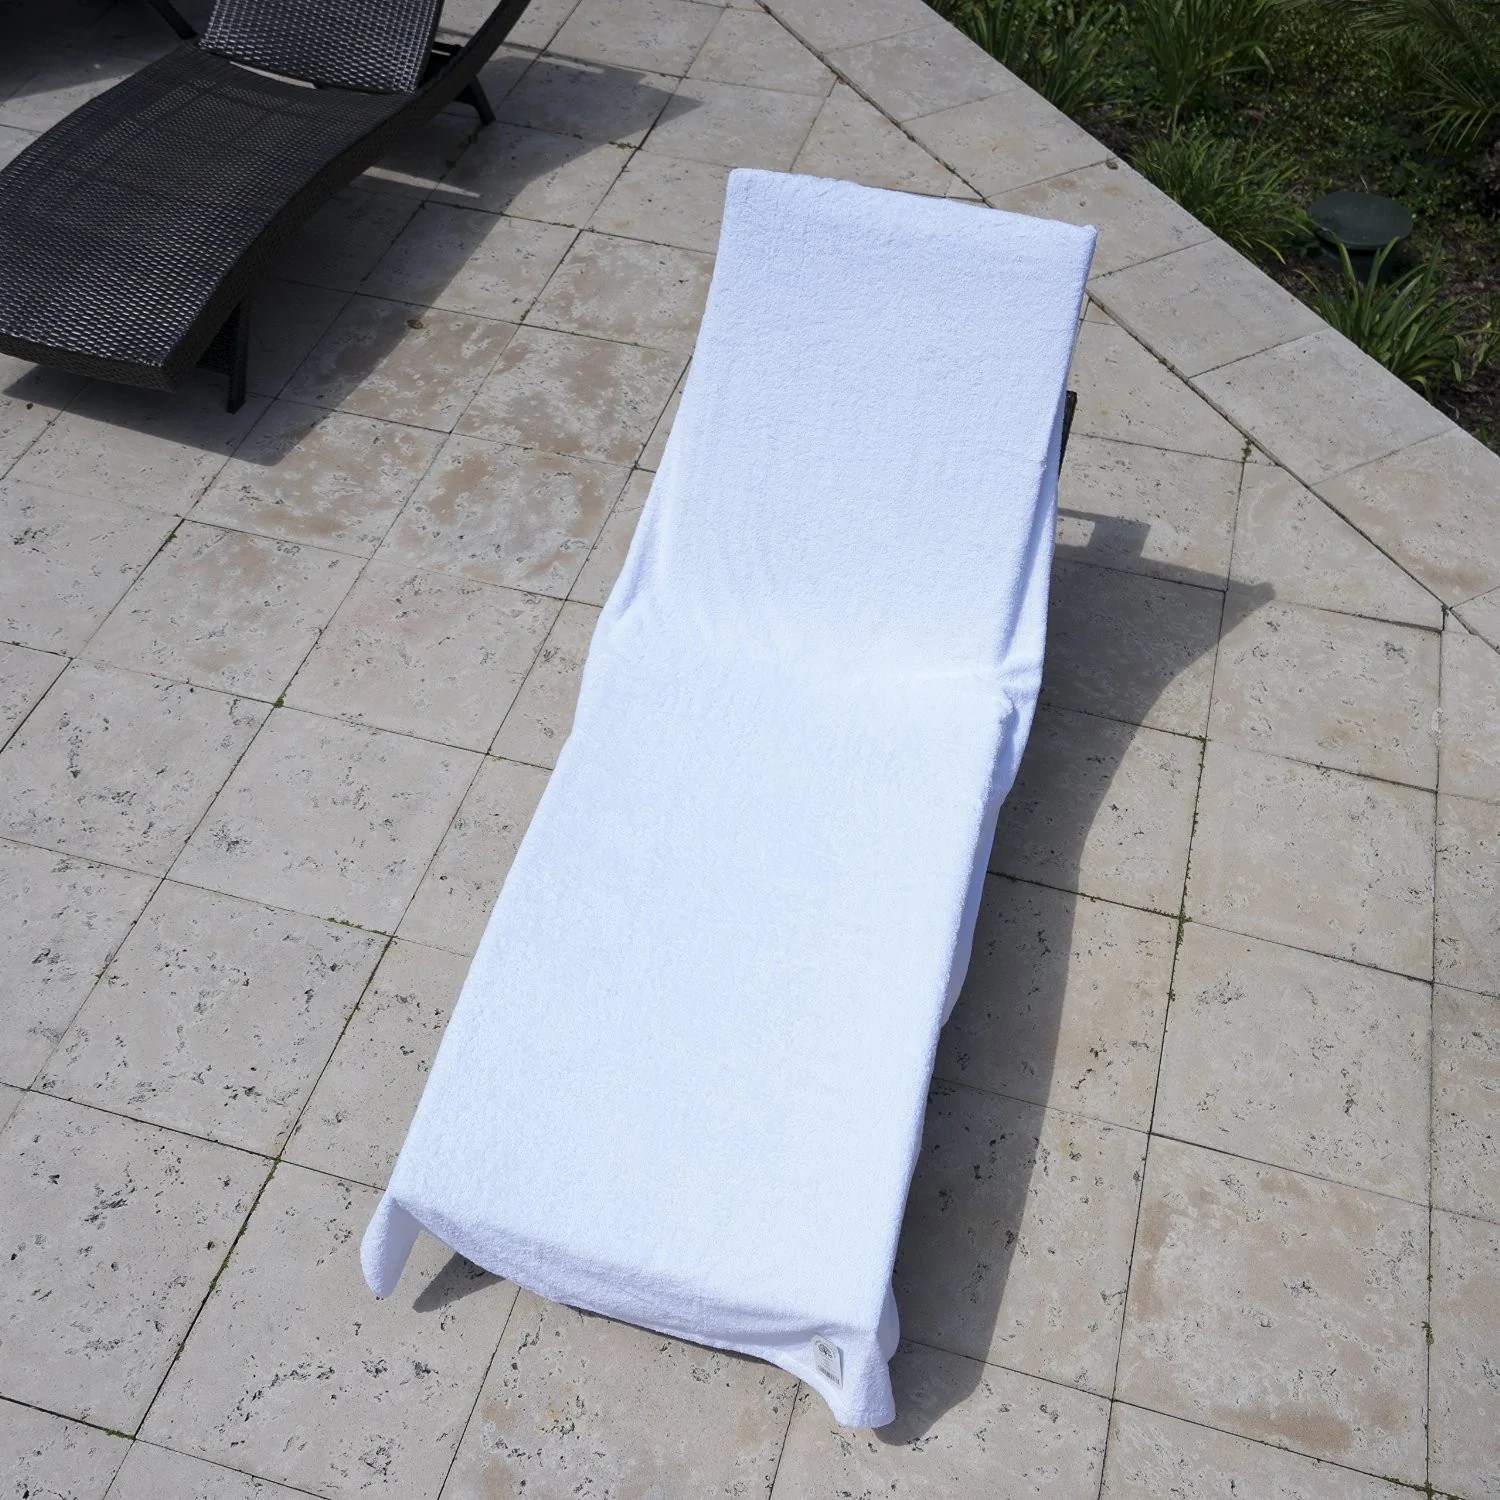 Lounge Chair Towels Sun Towel Lounge Beach Chair Cover Resort Year Of Clean Water